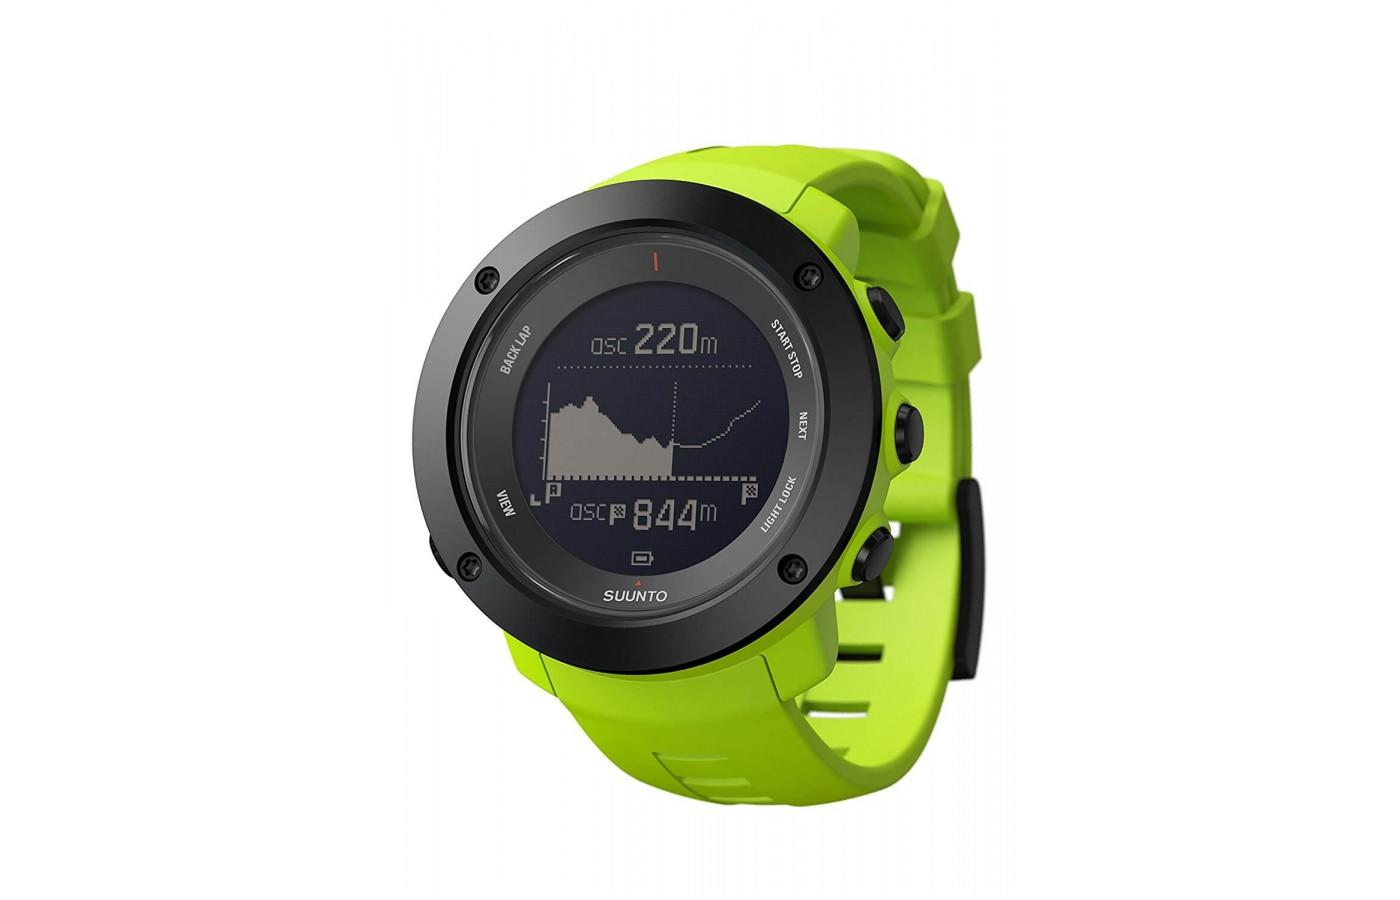 The Suunto Ambit3 Vertical comes in three different colors including green